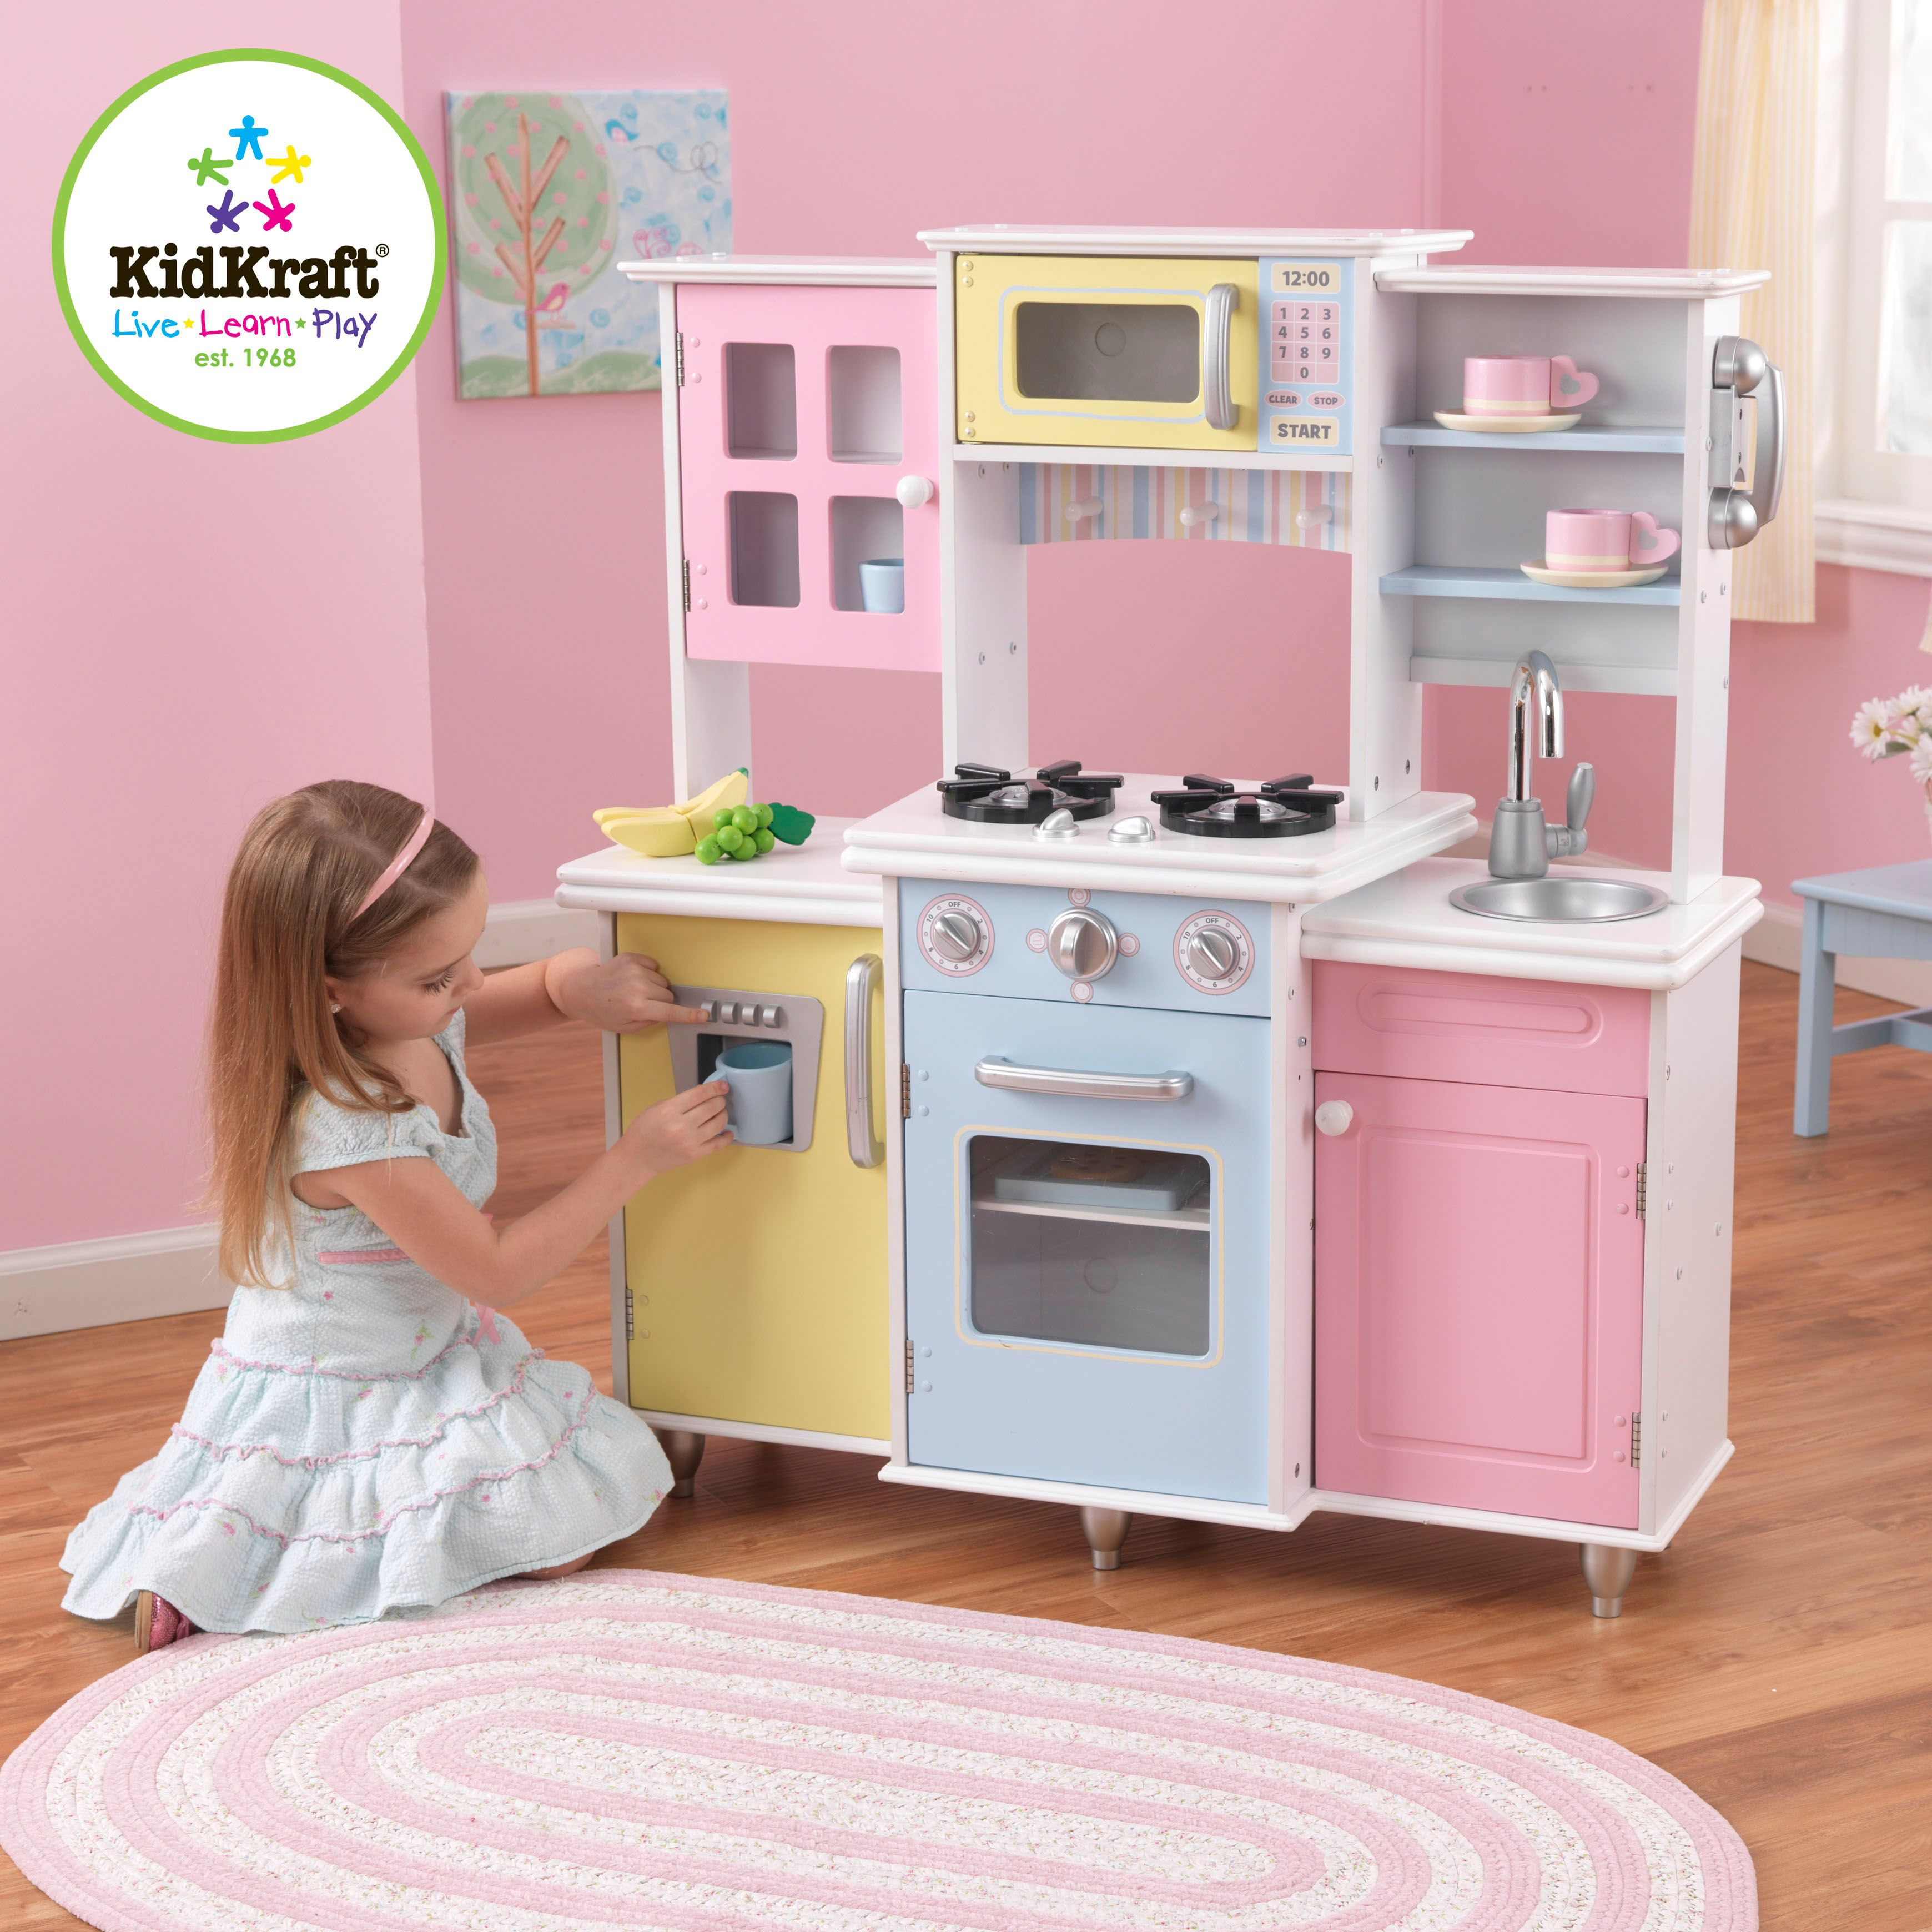 Kidkraft Play Kitchen Set kids kitchen set - kidkraft master cook's kitchen for kids | kids